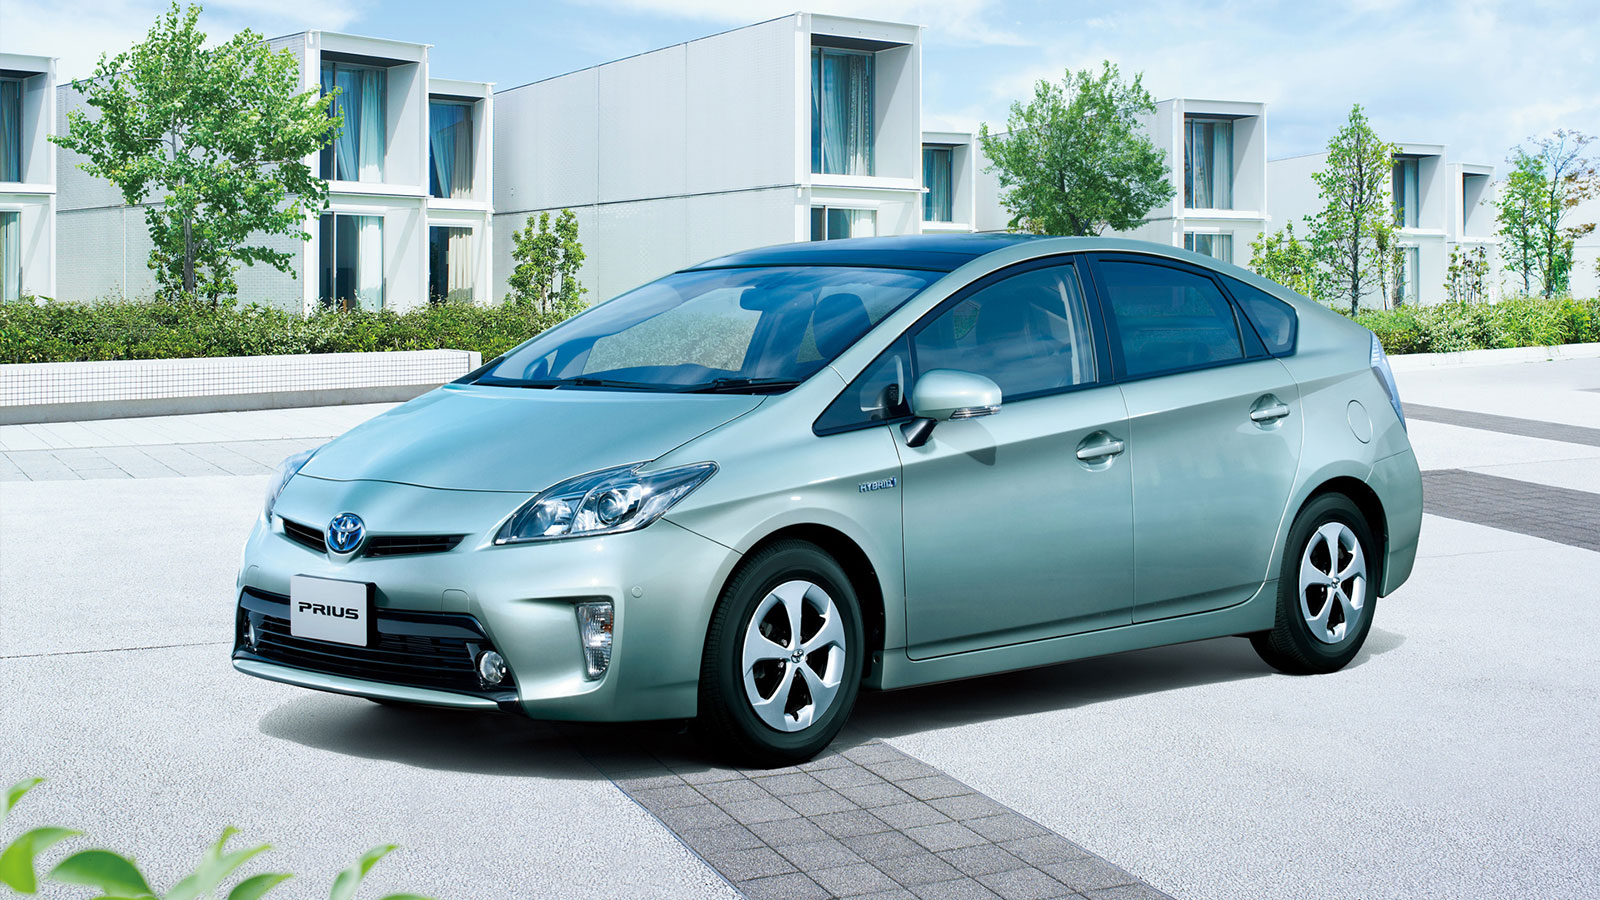 l 39 hybride toyota la troisi me g n ration de prius. Black Bedroom Furniture Sets. Home Design Ideas